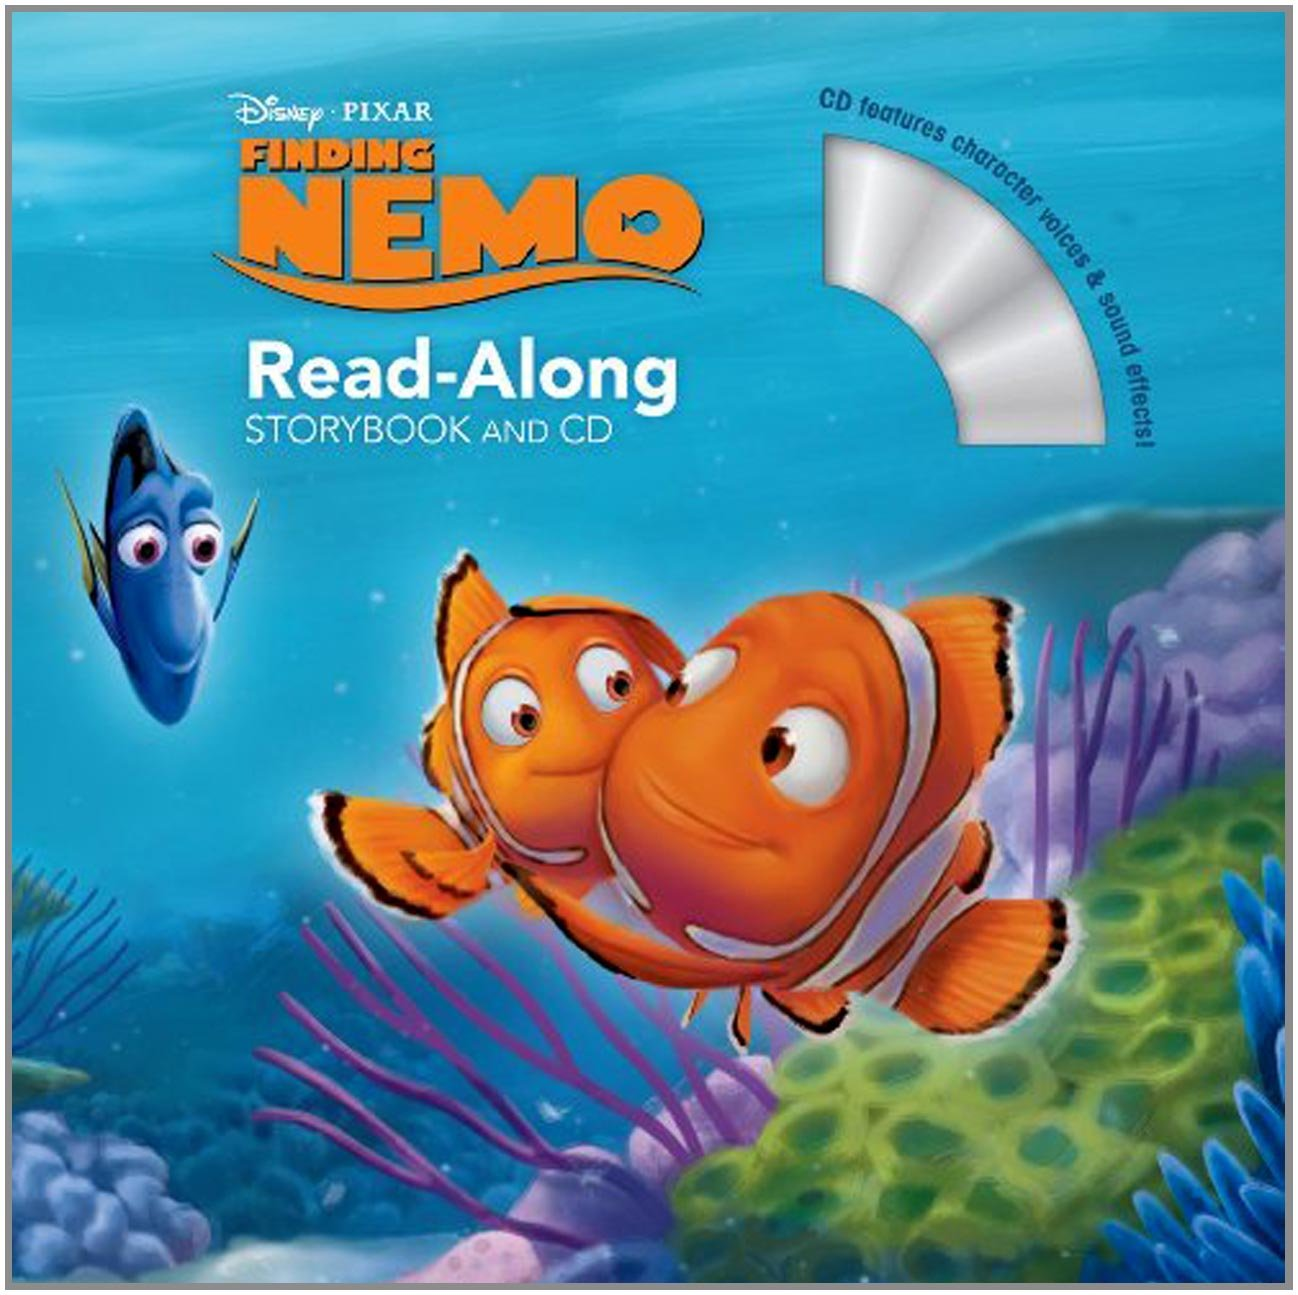 Finding Nemo Read Along Storybook And CD Disney Book Group Art Team 9781423160281 Amazon Books